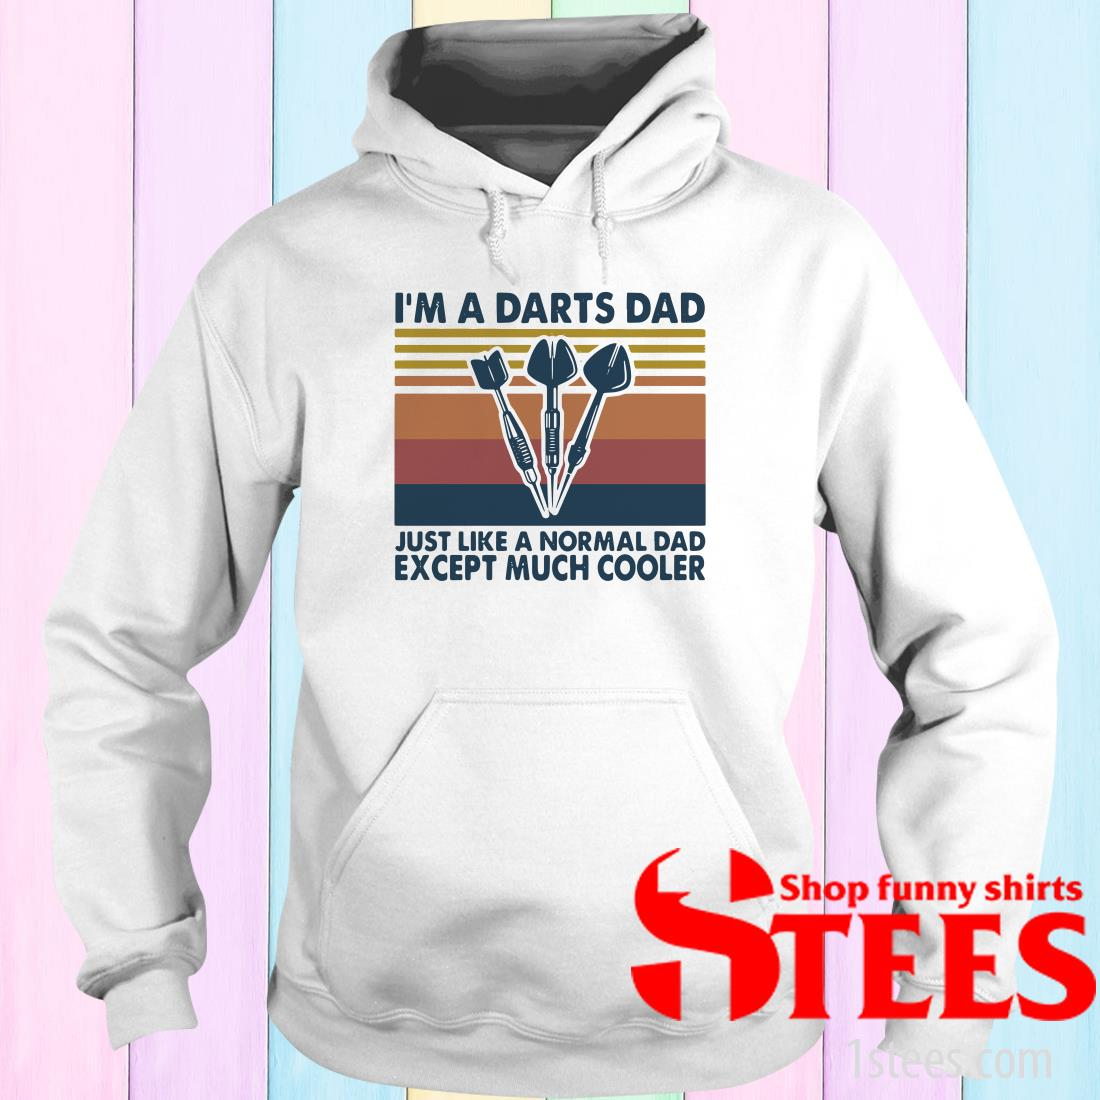 I'm A Darts Dad Just Like A Normal Dad Except Much Cooler Vintage Shirt